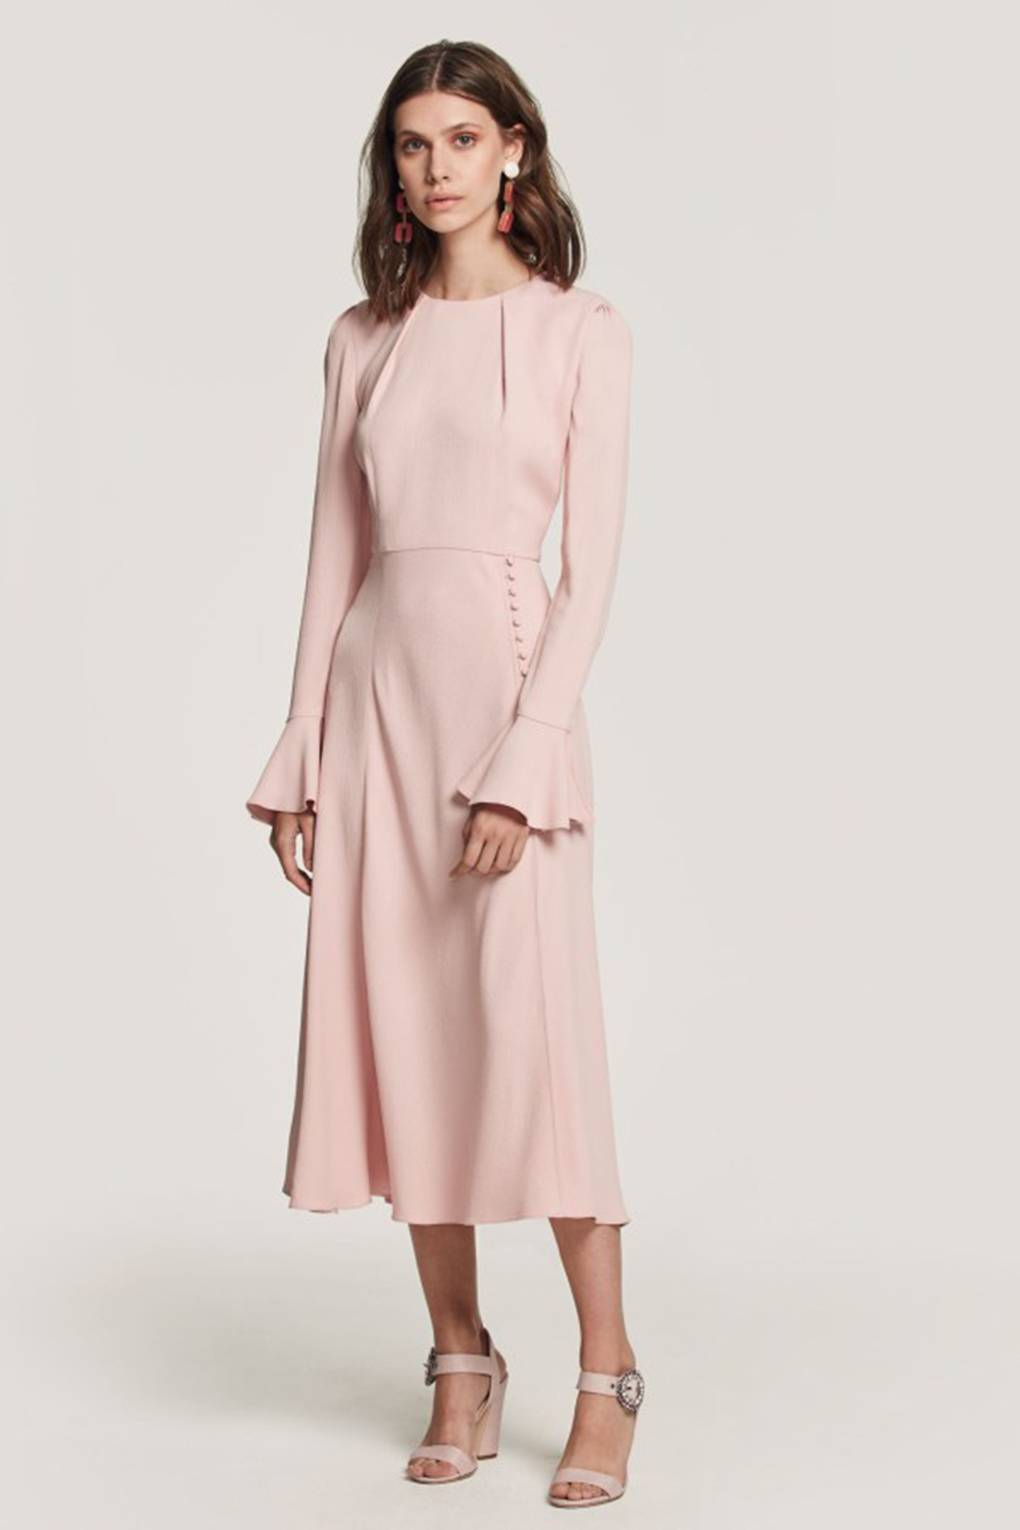 9717f497f6c The Best Ethical Clothing Brands Of 2019